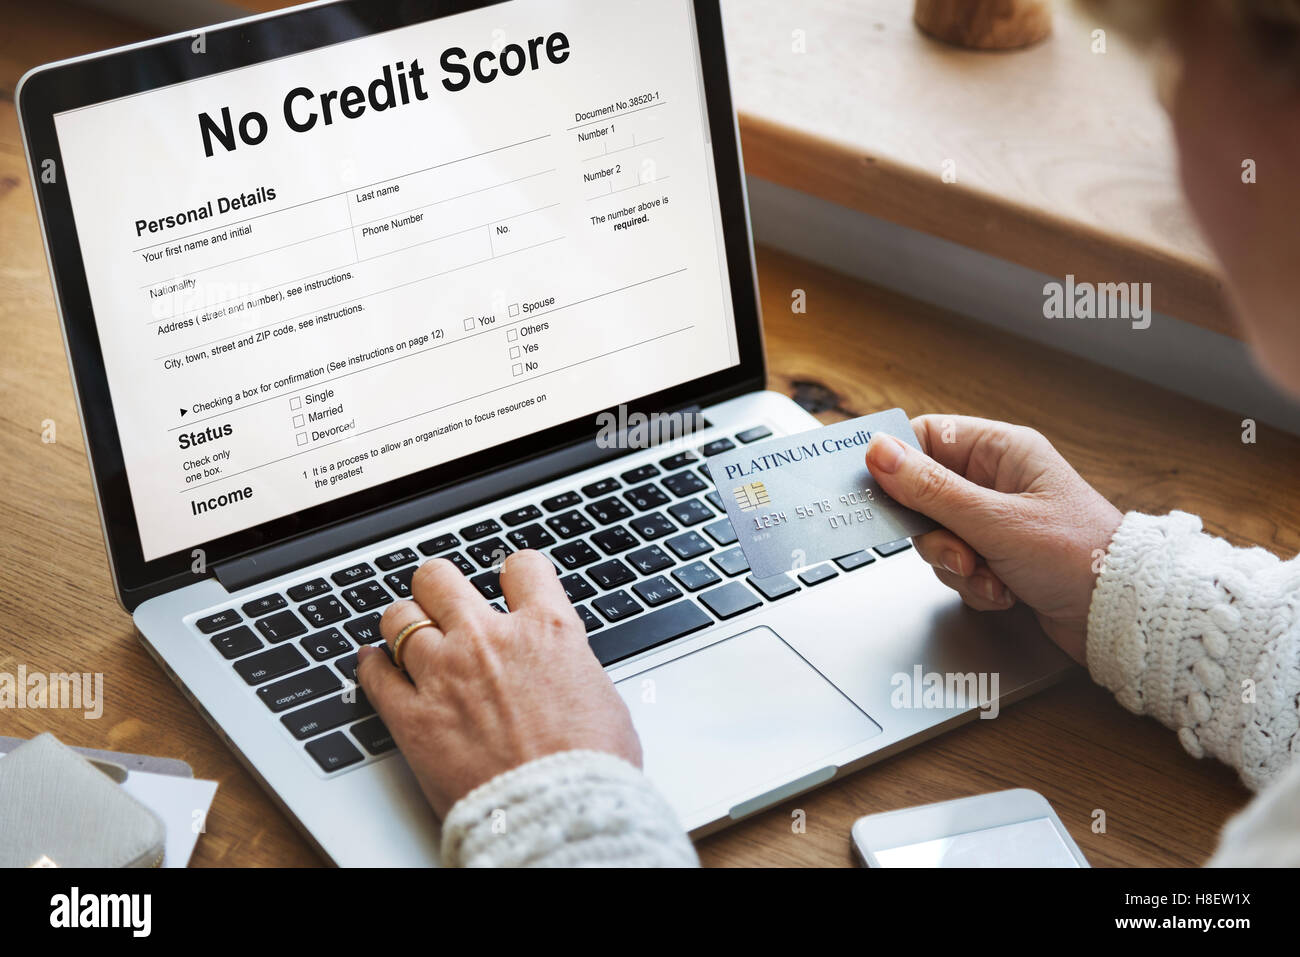 No Credit Score Debt Deny Concept - Stock Image